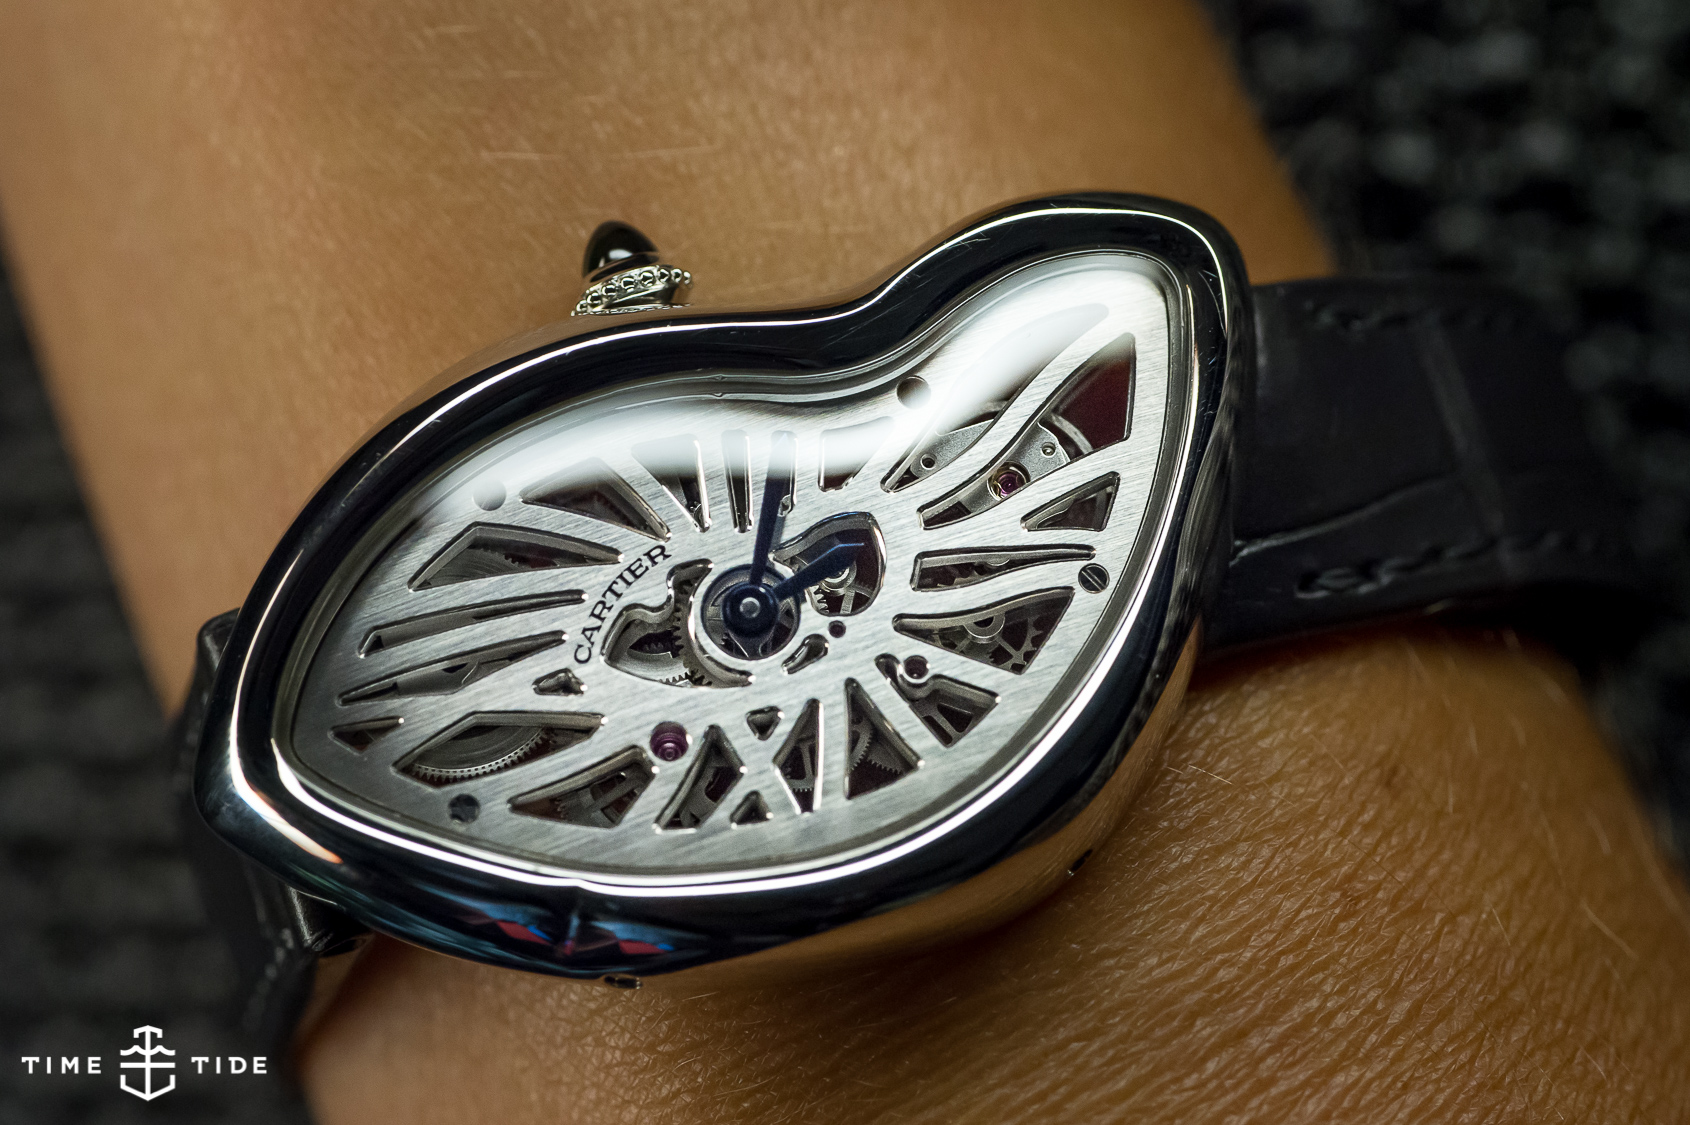 HANDS ON The Cartier Crash Skeleton Time And Tide Watches